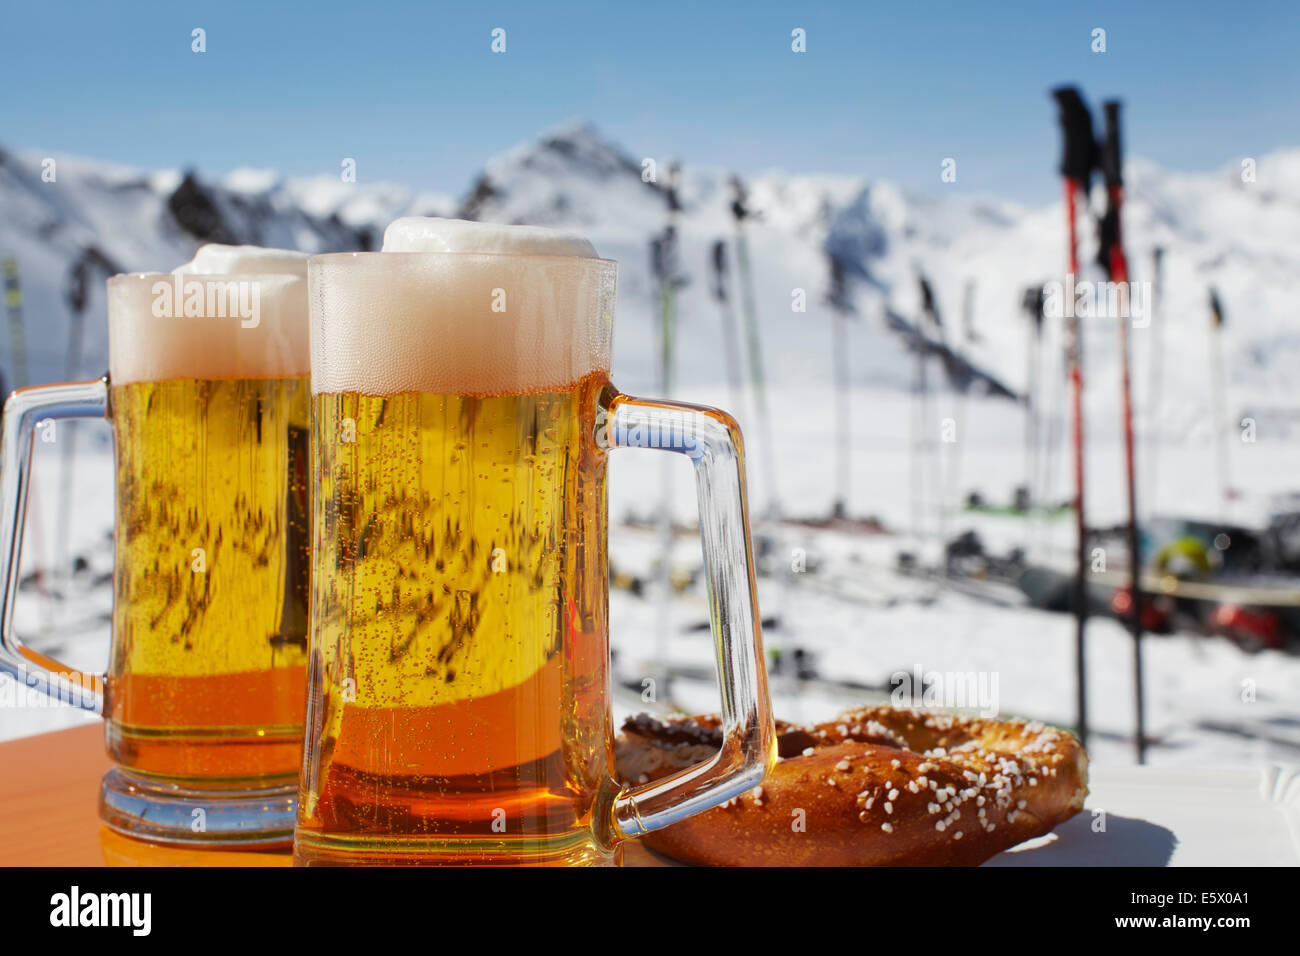 Two glasses of beer on outdoor cafe table, Austria - Stock Image